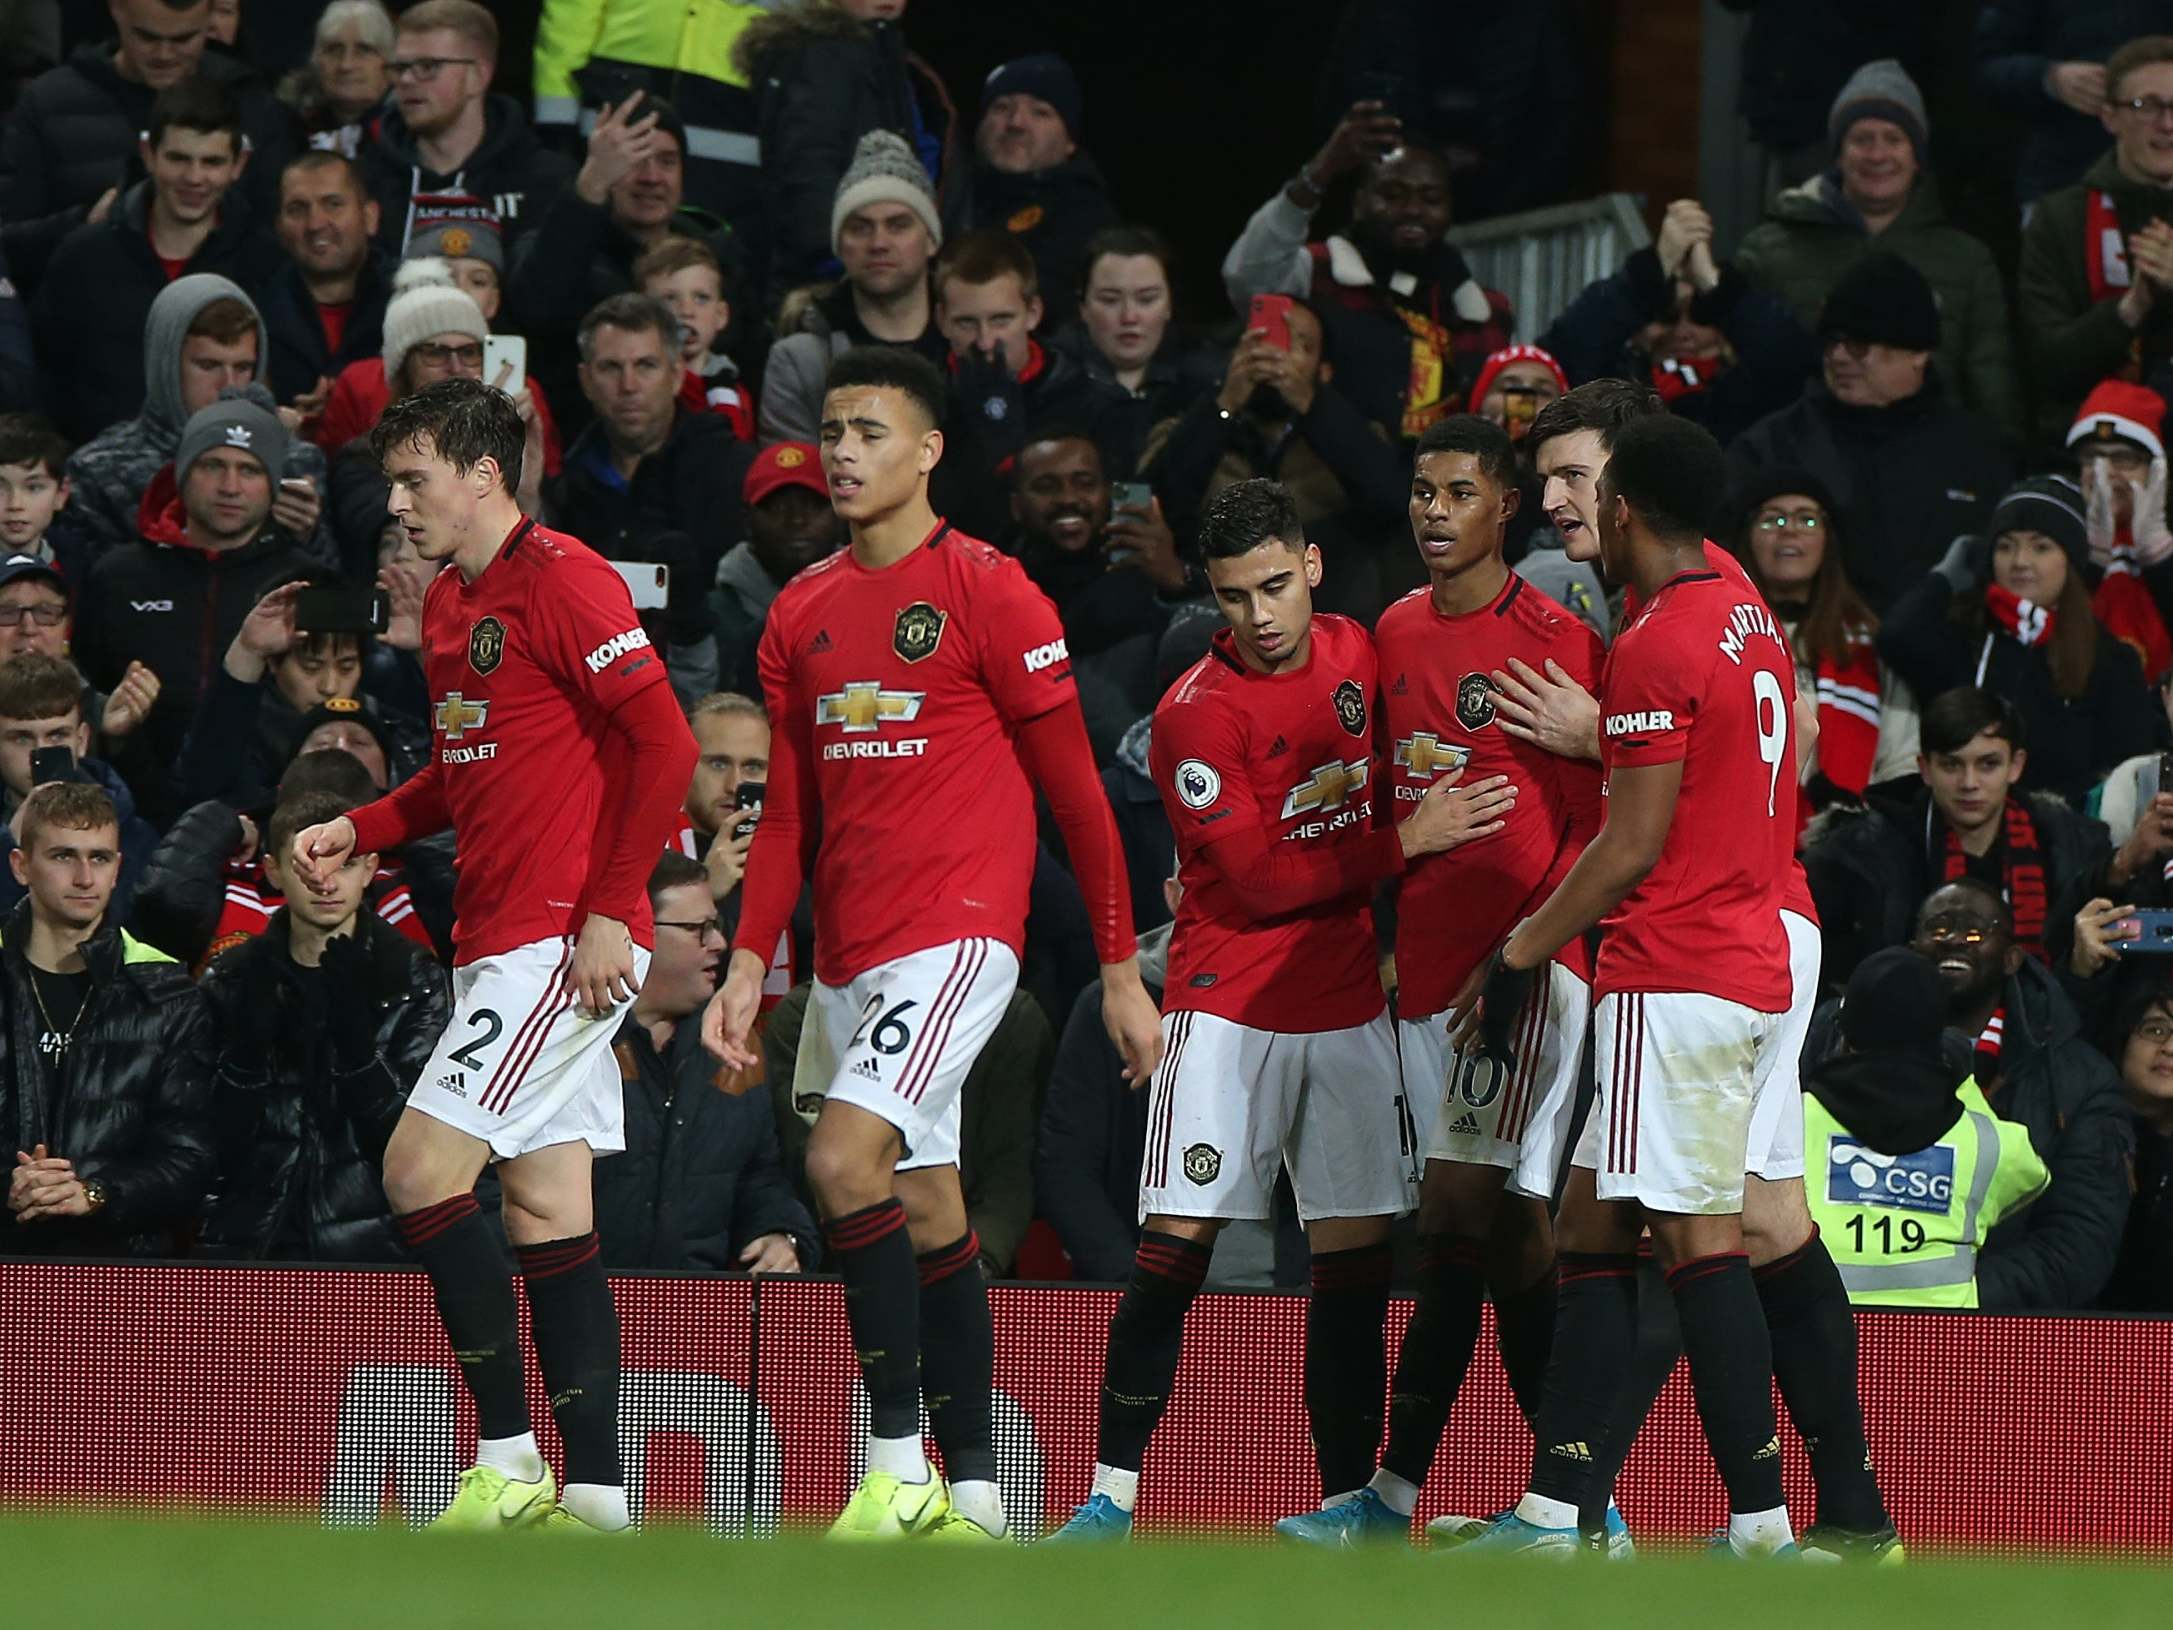 Man Utd Vs Newcastle Live Latest Score Goals And Updates From Premier League Fixture Today E Nigeria